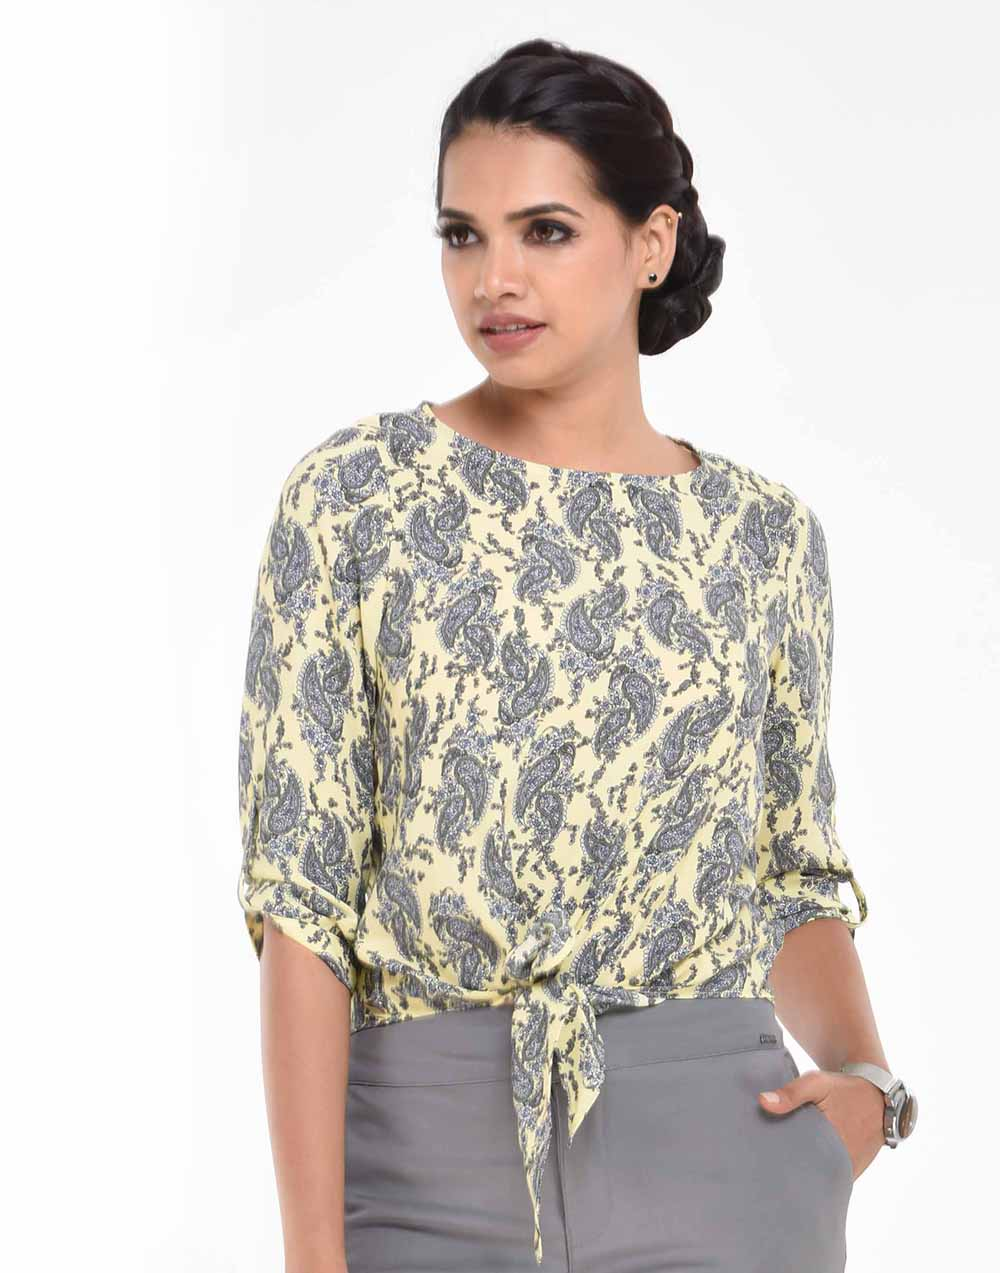 New Blouse Patterns In Sri Lanka Polo T Shirts Outlet Official